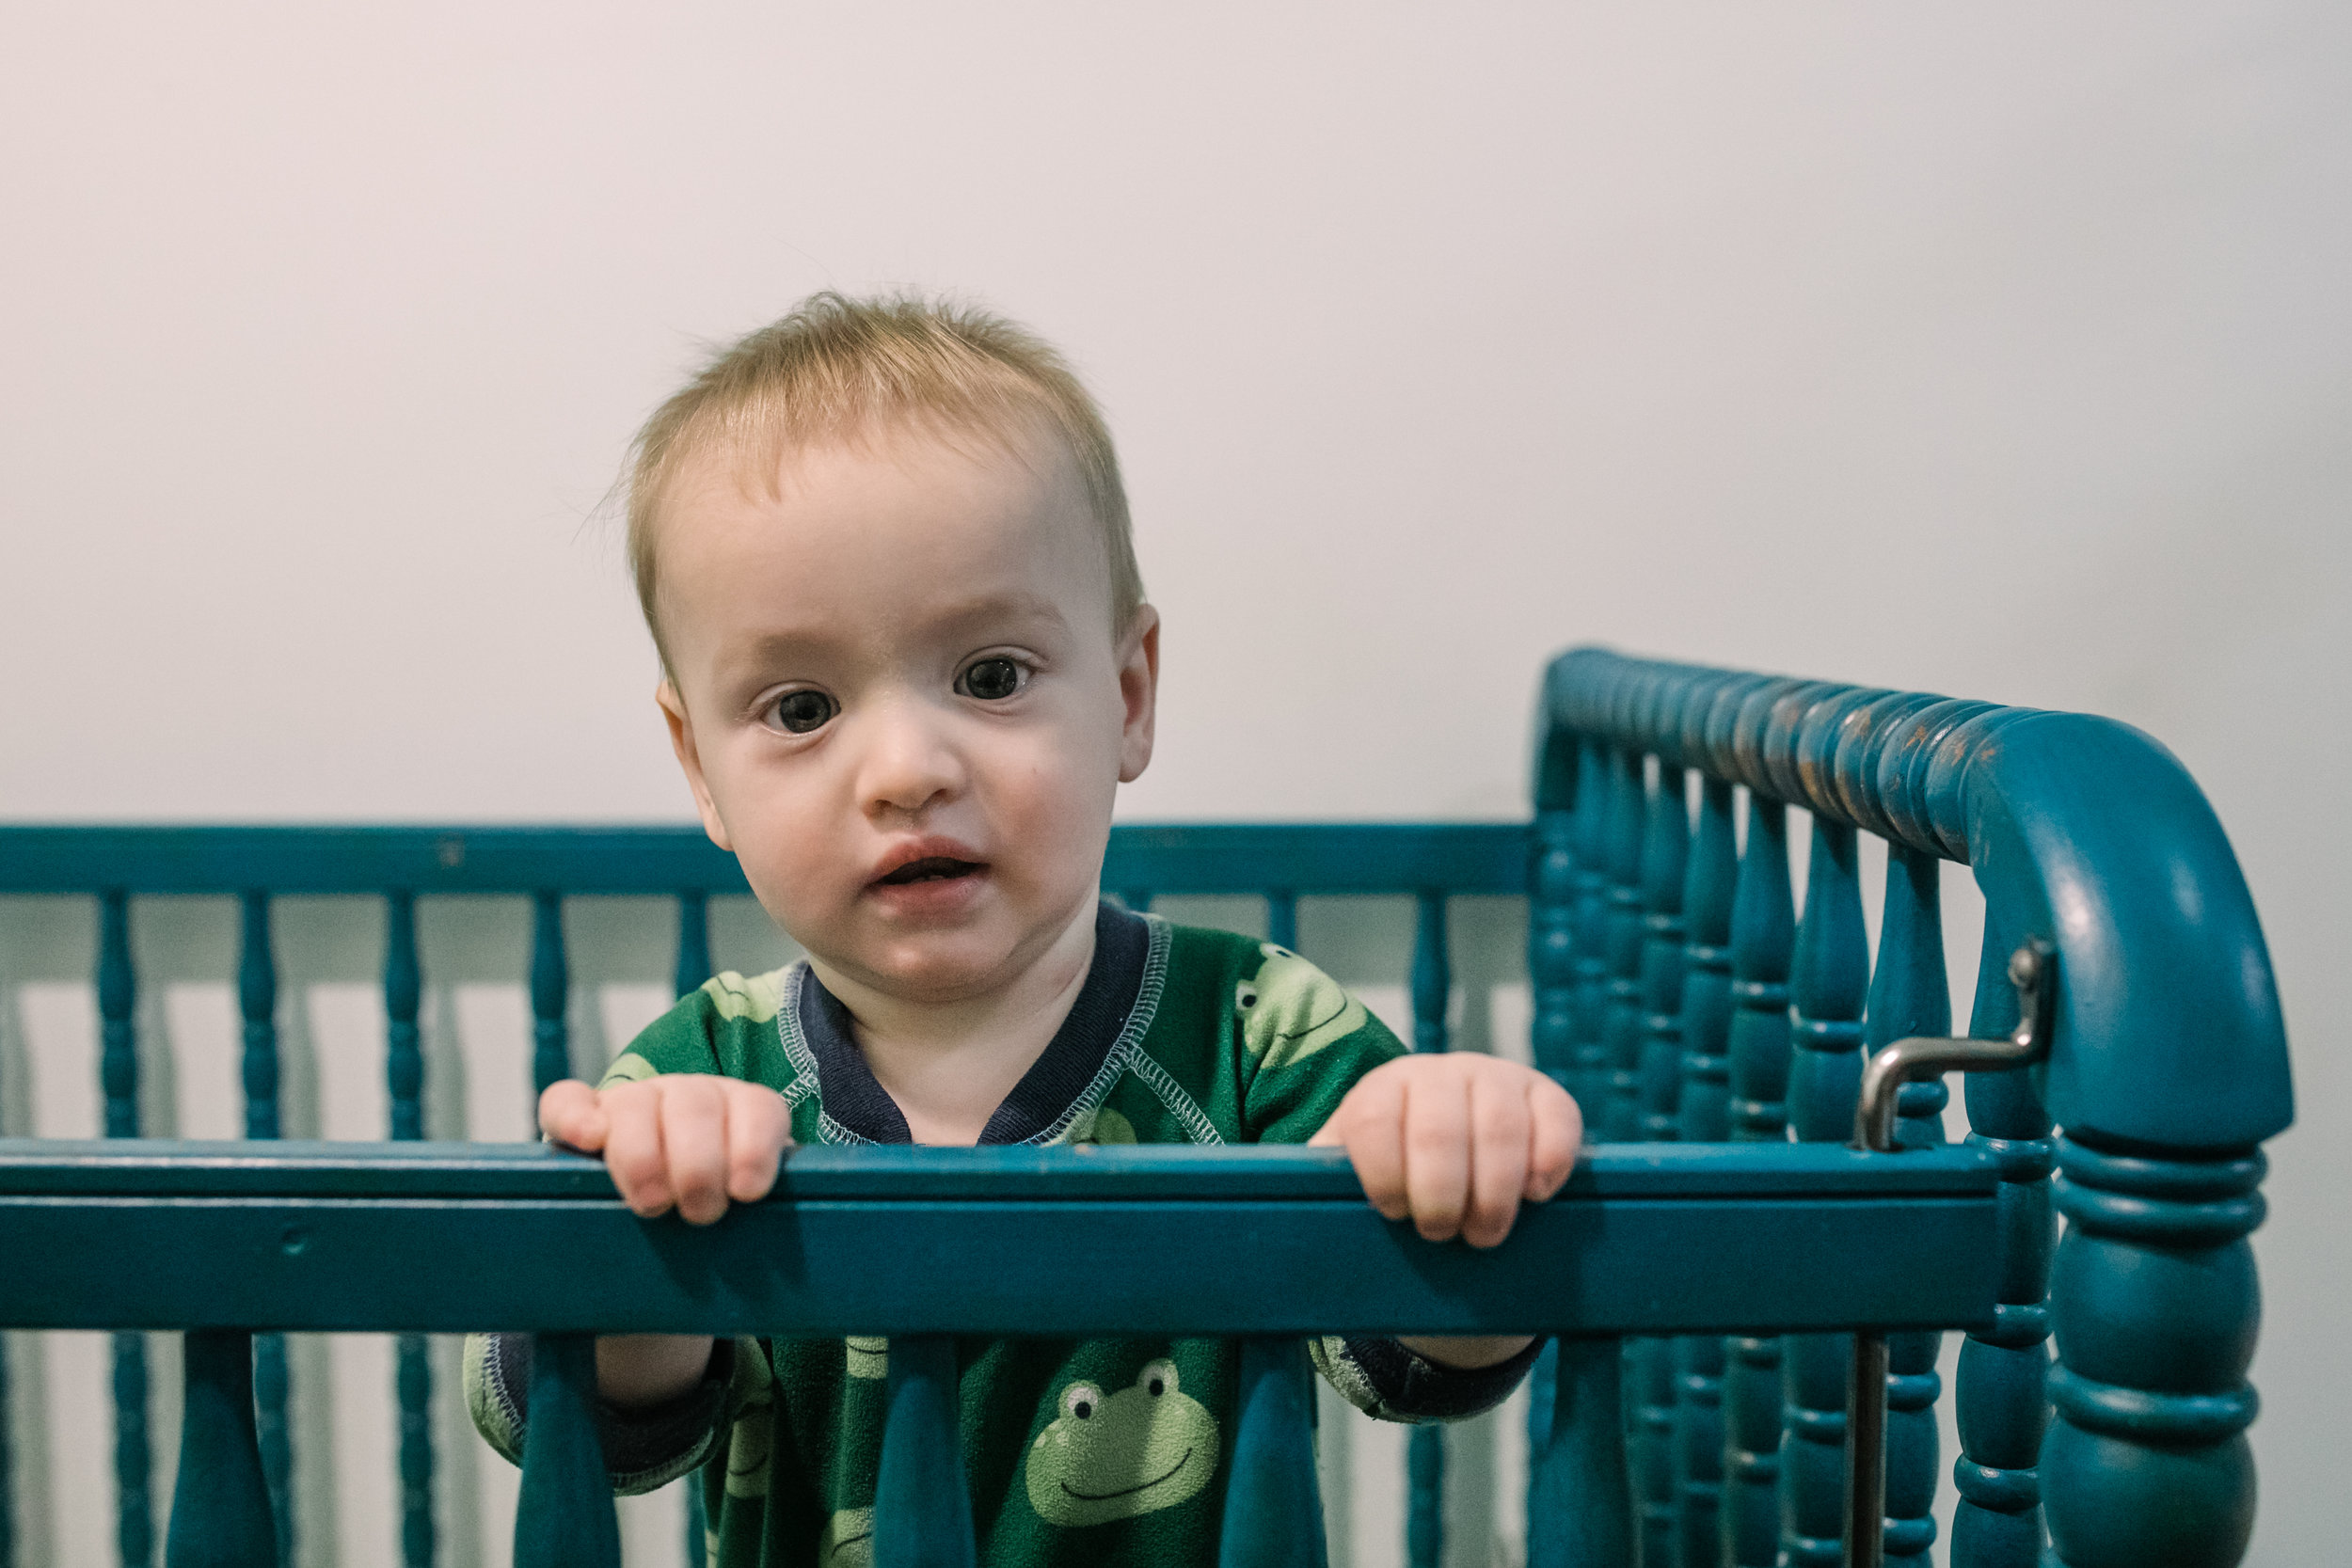 Baby boy stands up in crib and looks in the camera